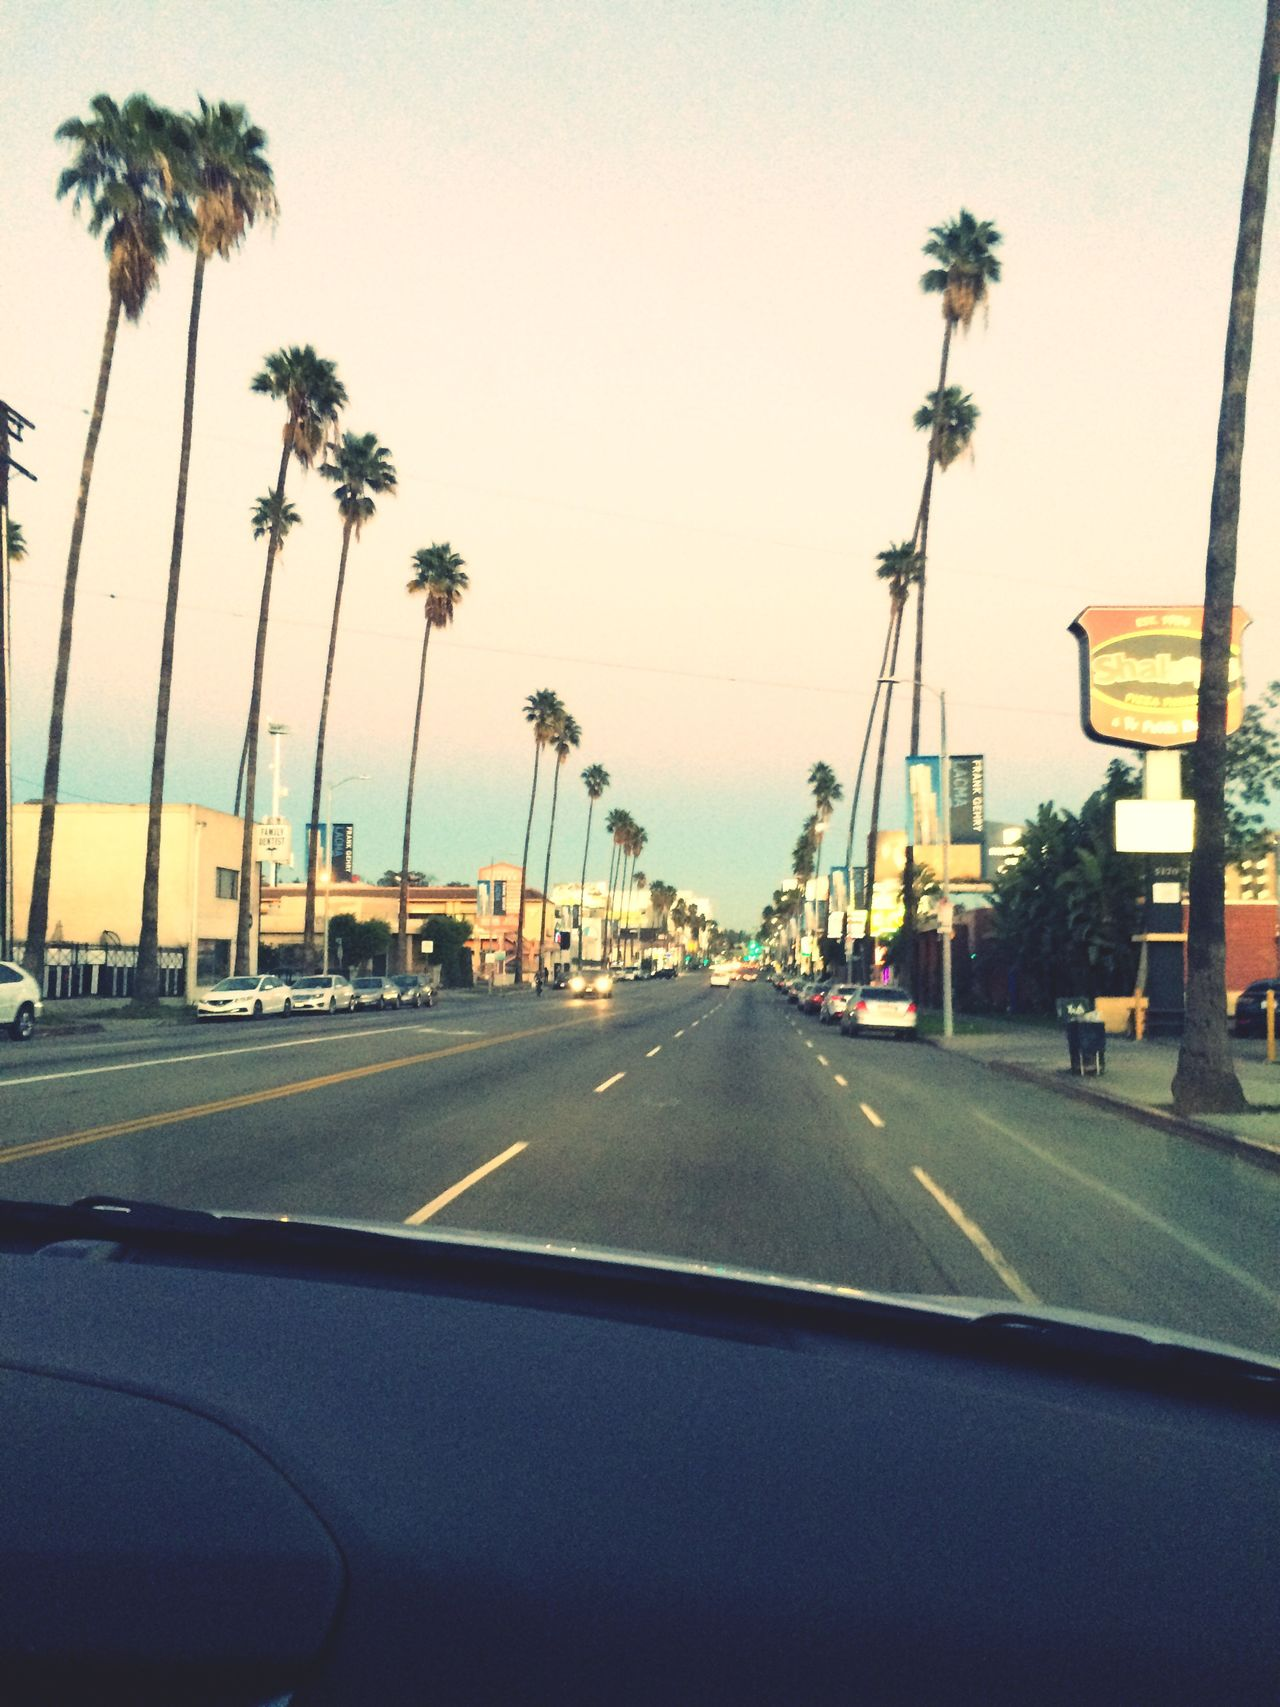 Check This Out Hello World Los Ángeles Flowerstothepeople Palm Trees Love ♥ Cheese! Relaxing